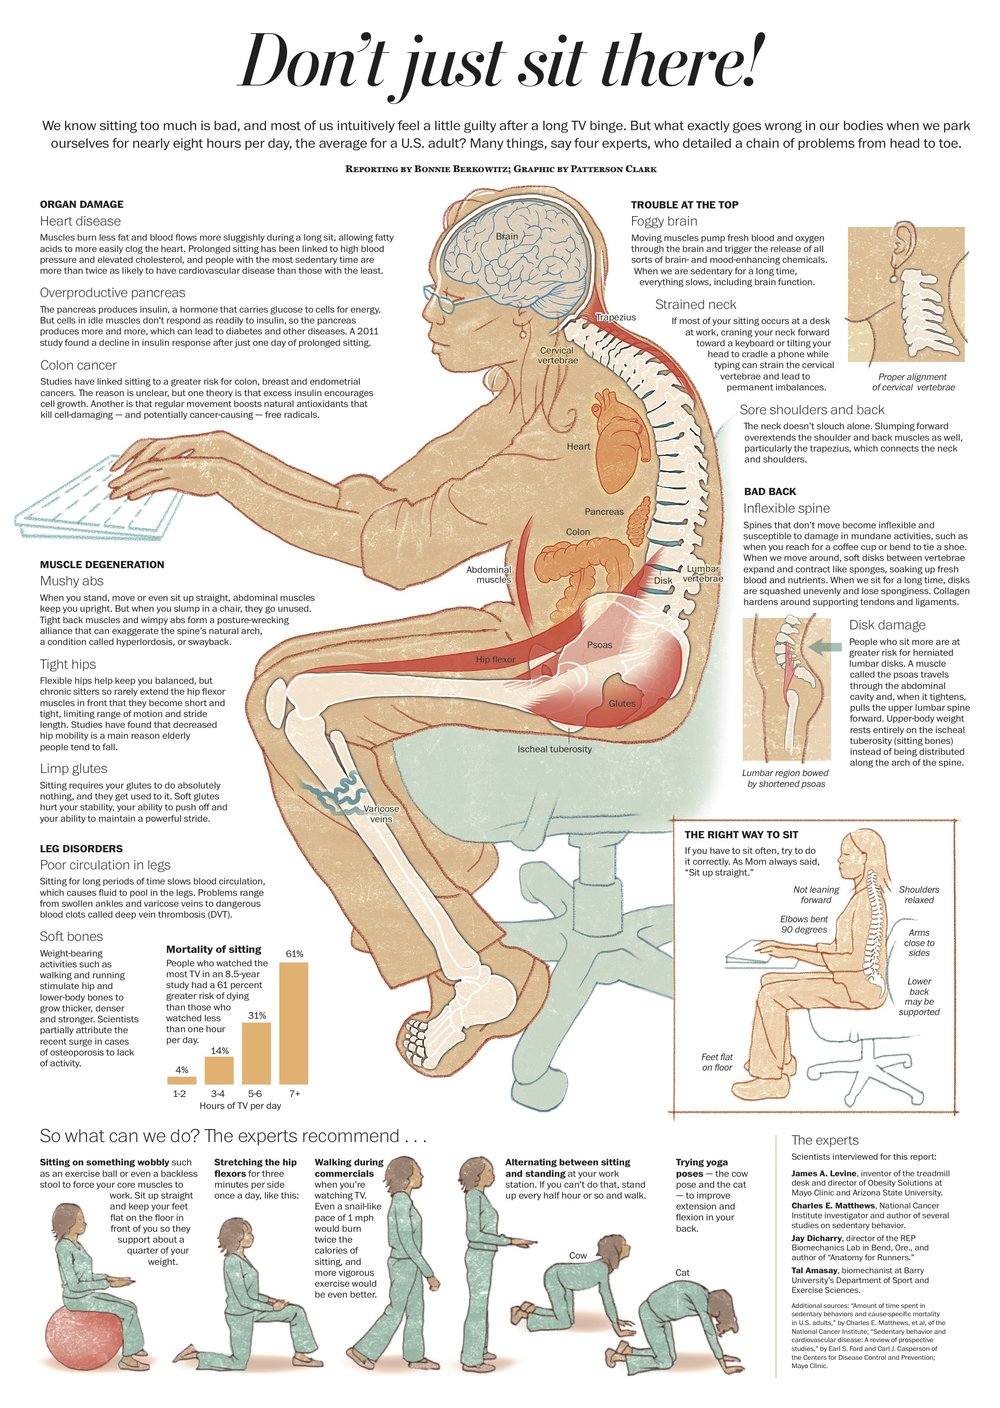 http://www.washingtonpost.com/wp-srv/special/health/sitting/Sitting.pdf